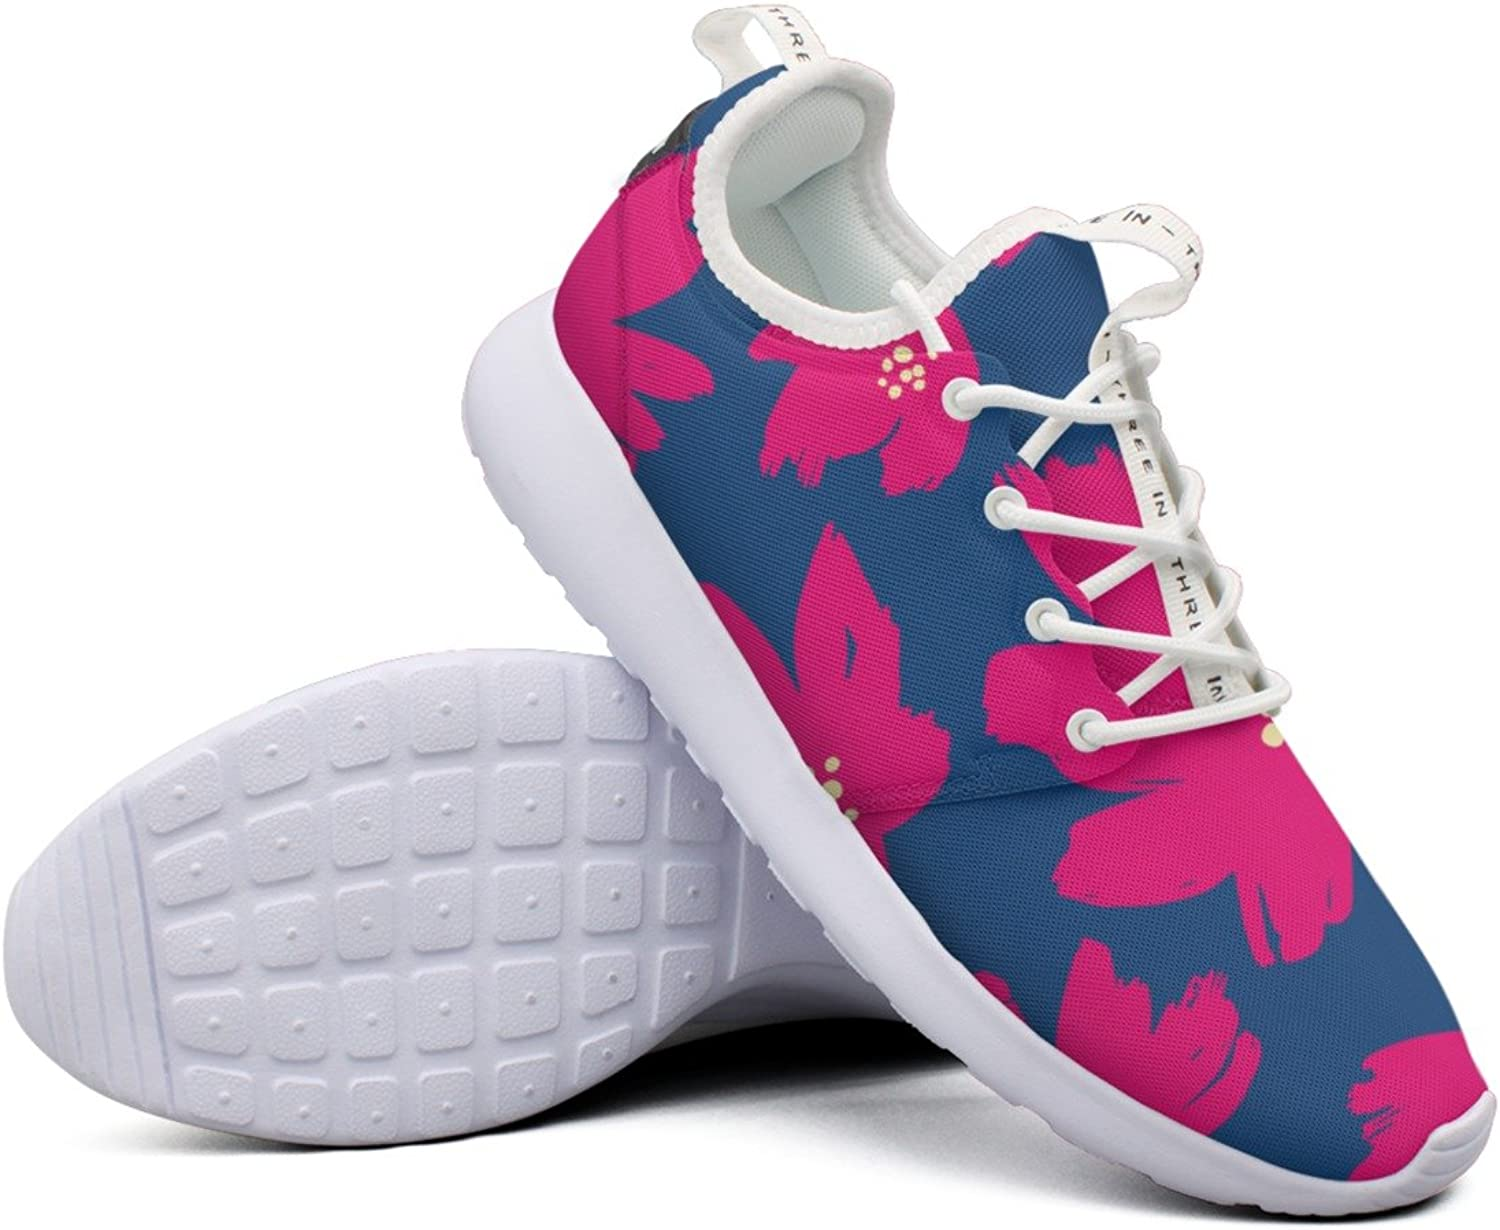 Women's Red Flowers colorful Camping Novelty Design Running shoes